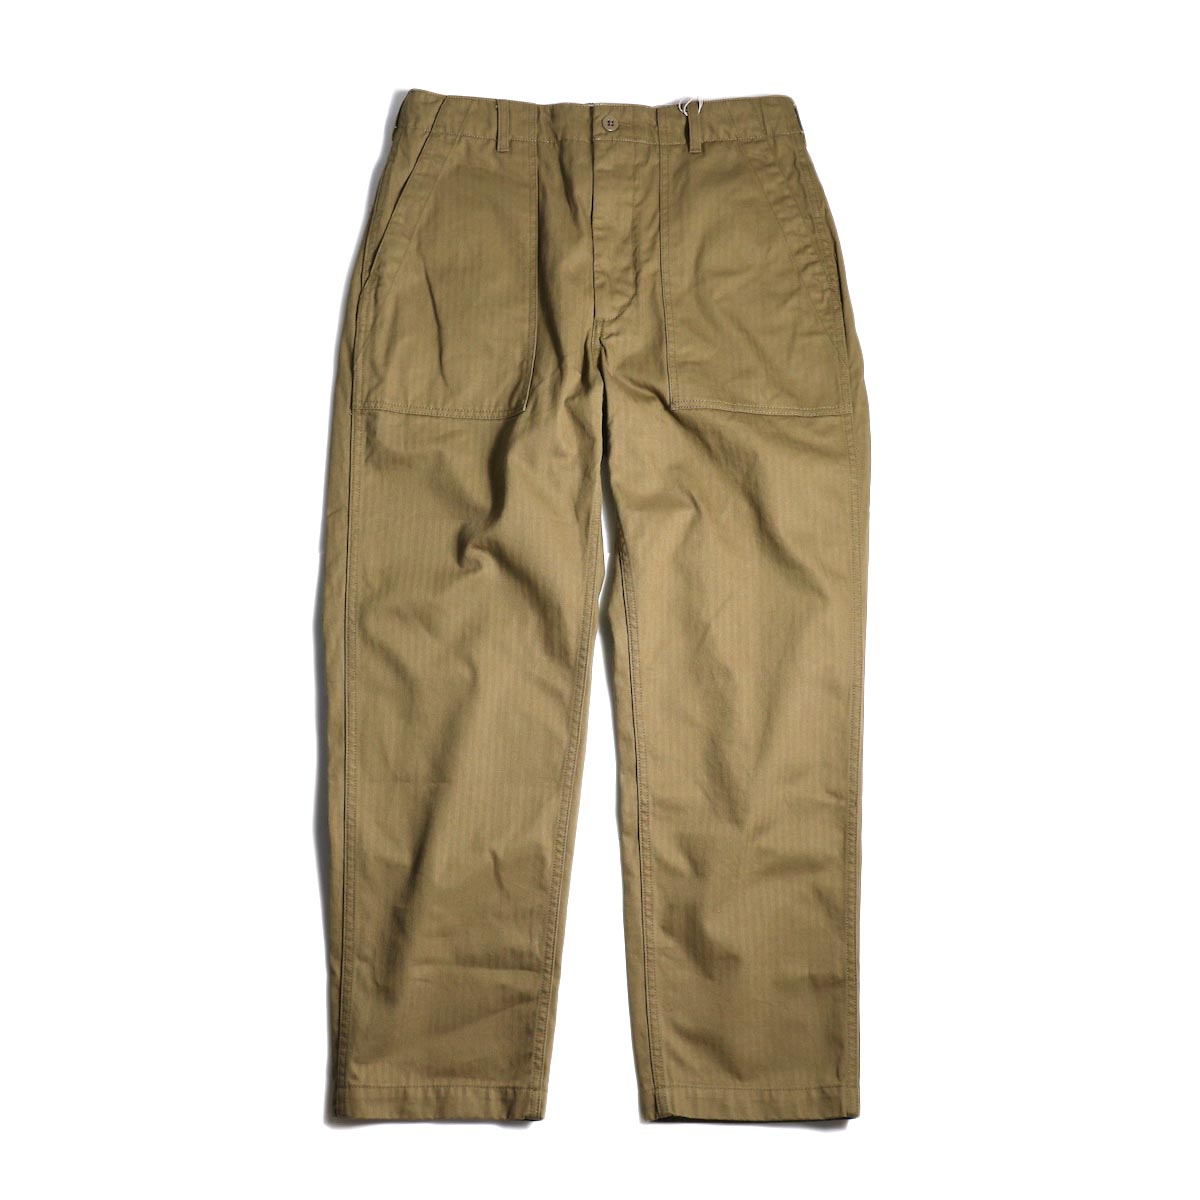 ENGINEERED GARMENTS / Fatigue Pant-HB Twill (Brown)